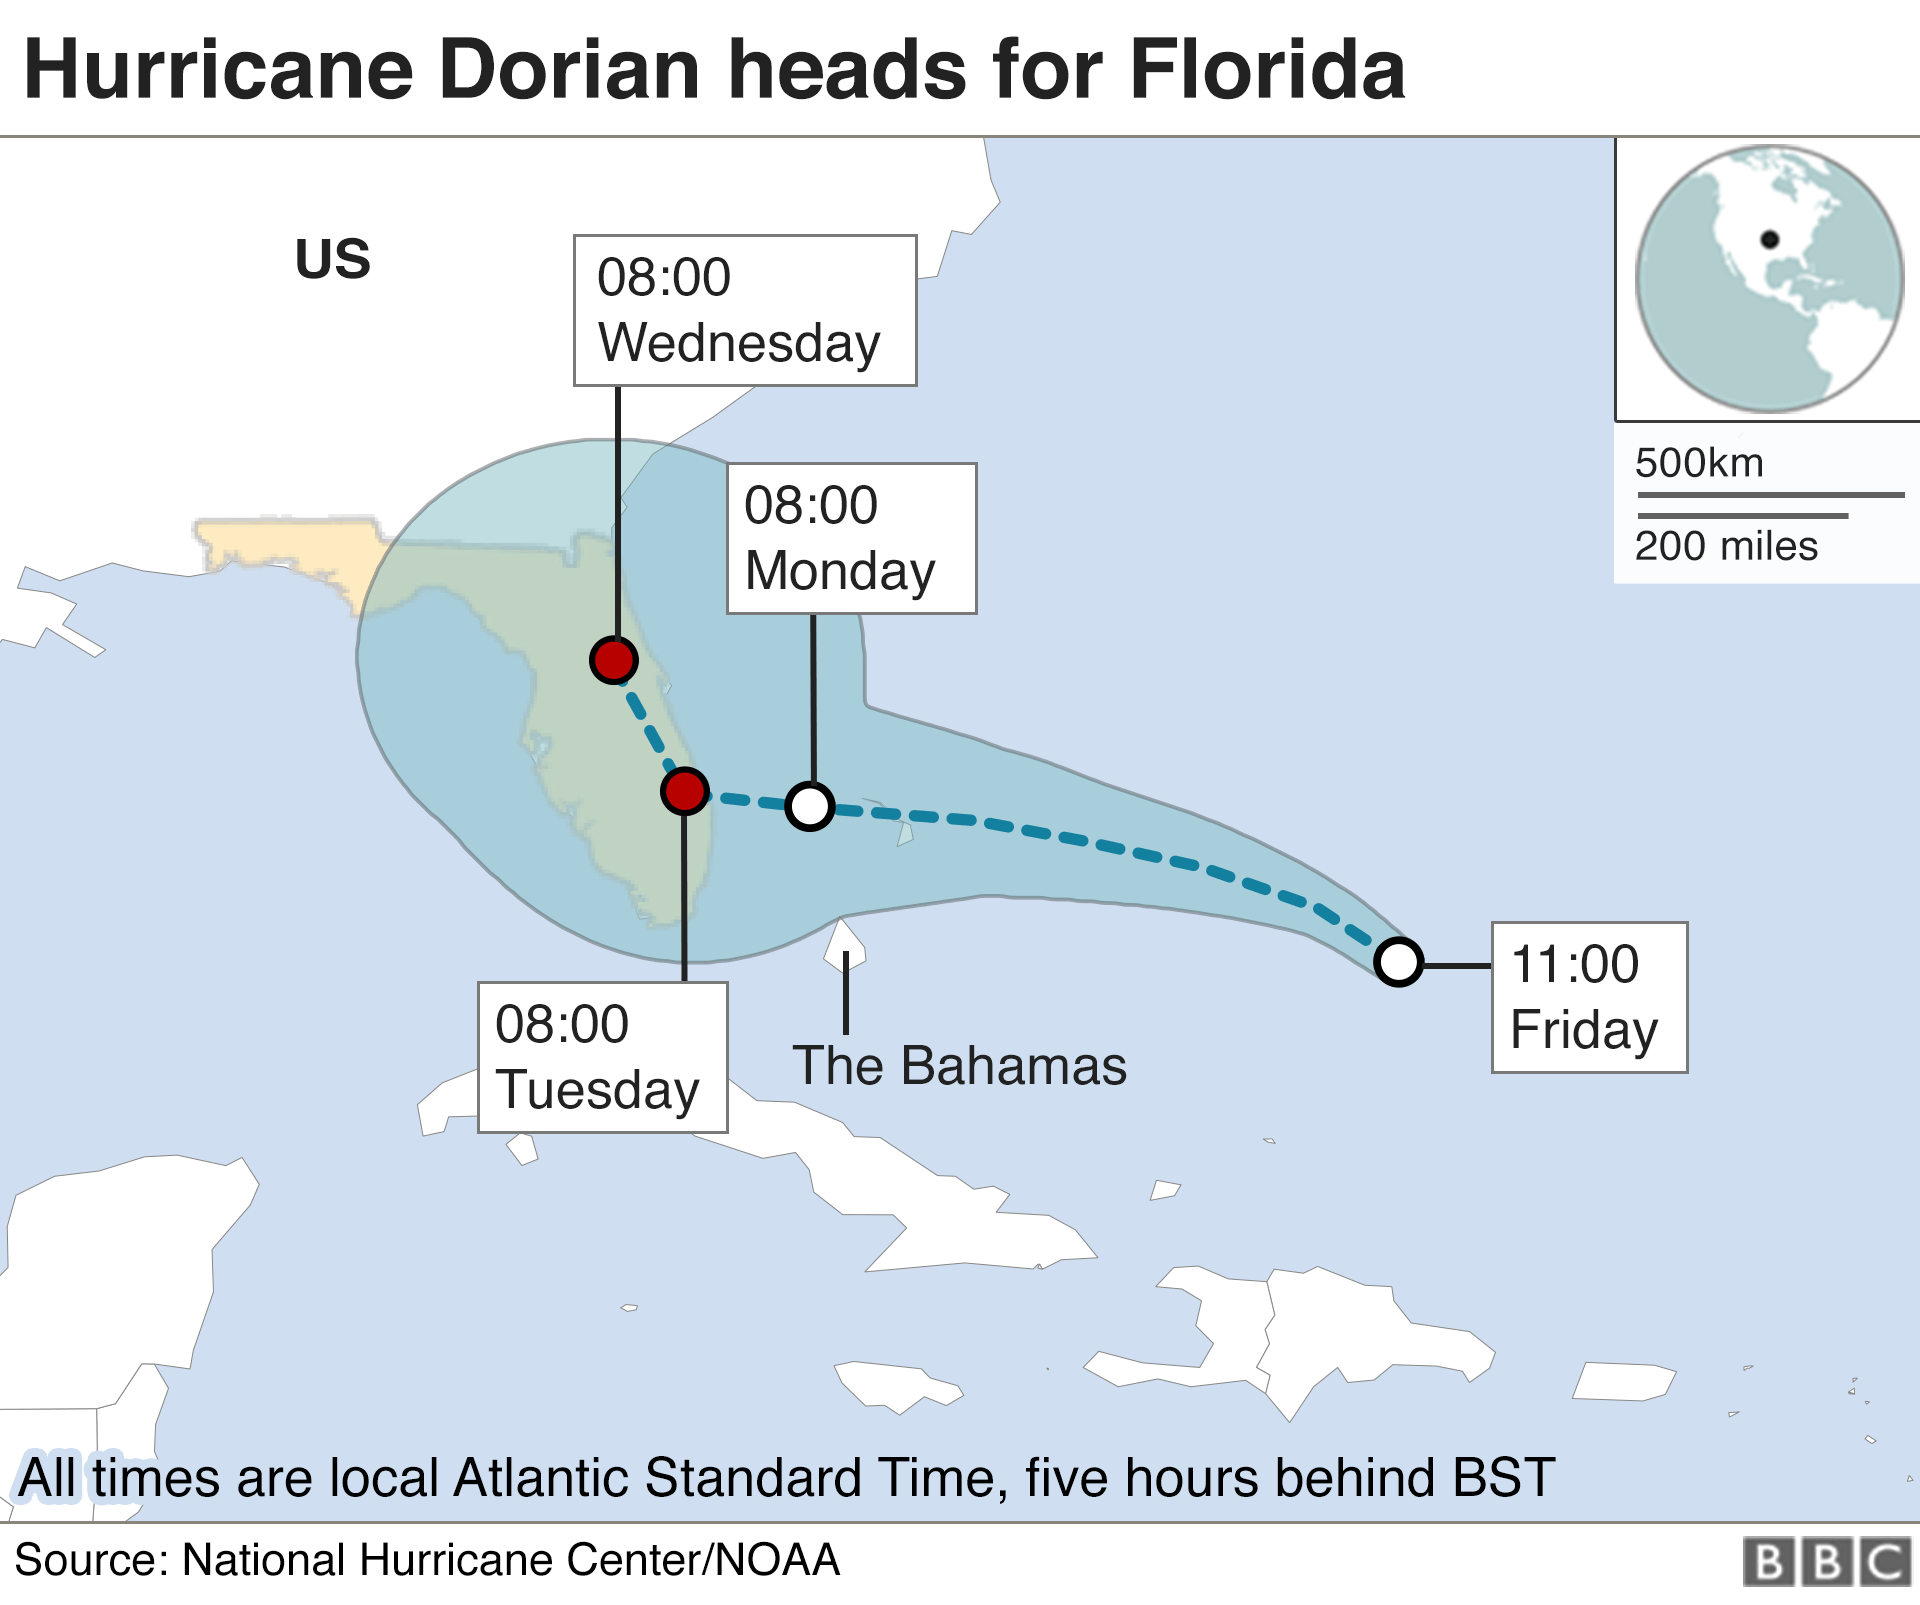 graphic of the hurricane's path